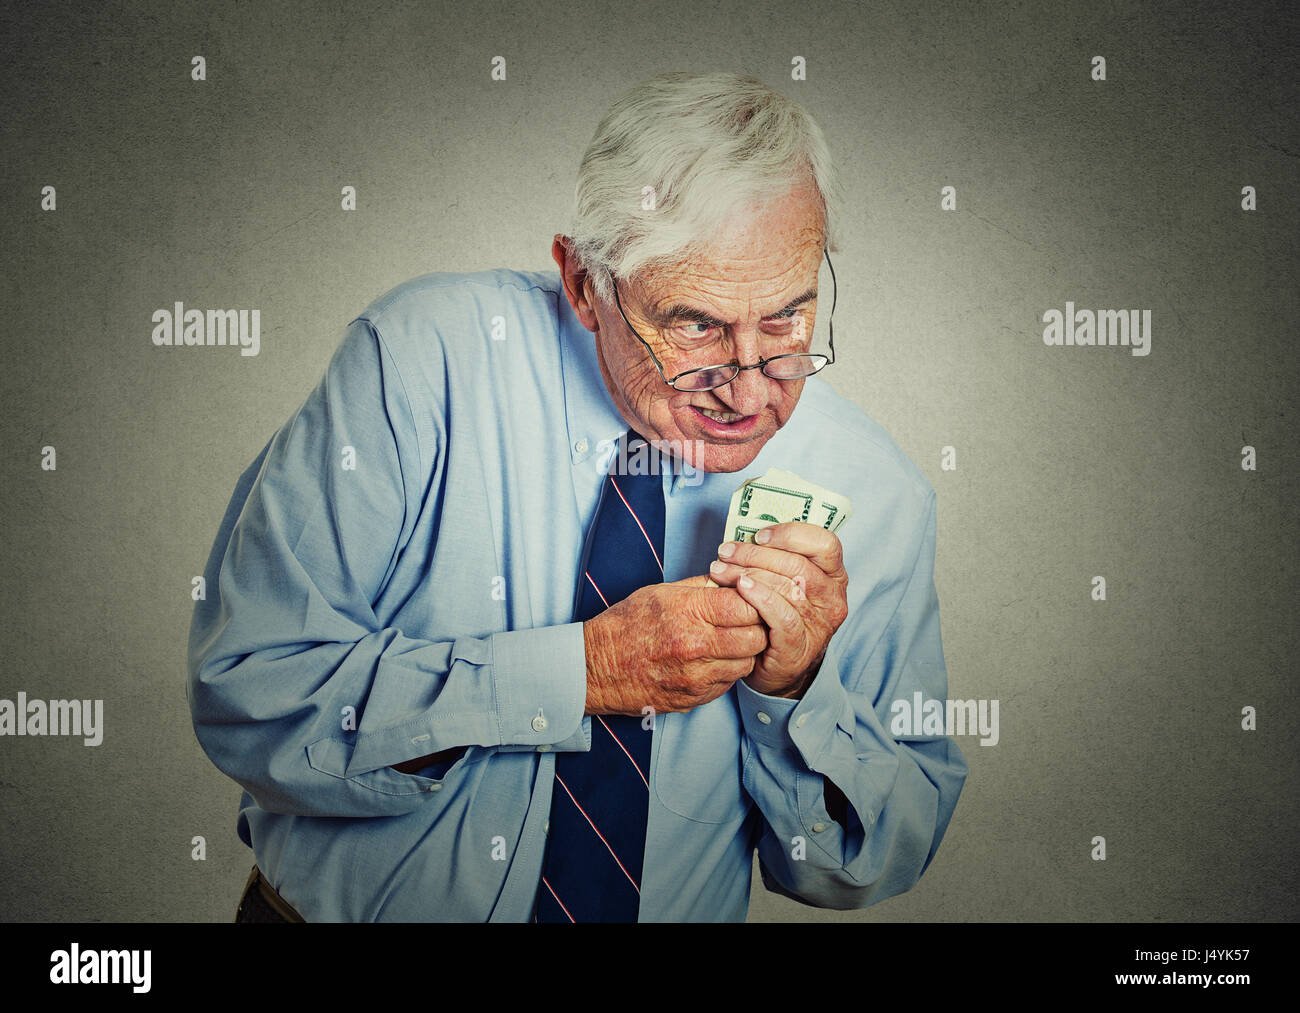 Closeup portrait greedy senior executive, CEO, boss, old corporate employee, mature man, holding dollar banknotes - Stock Image